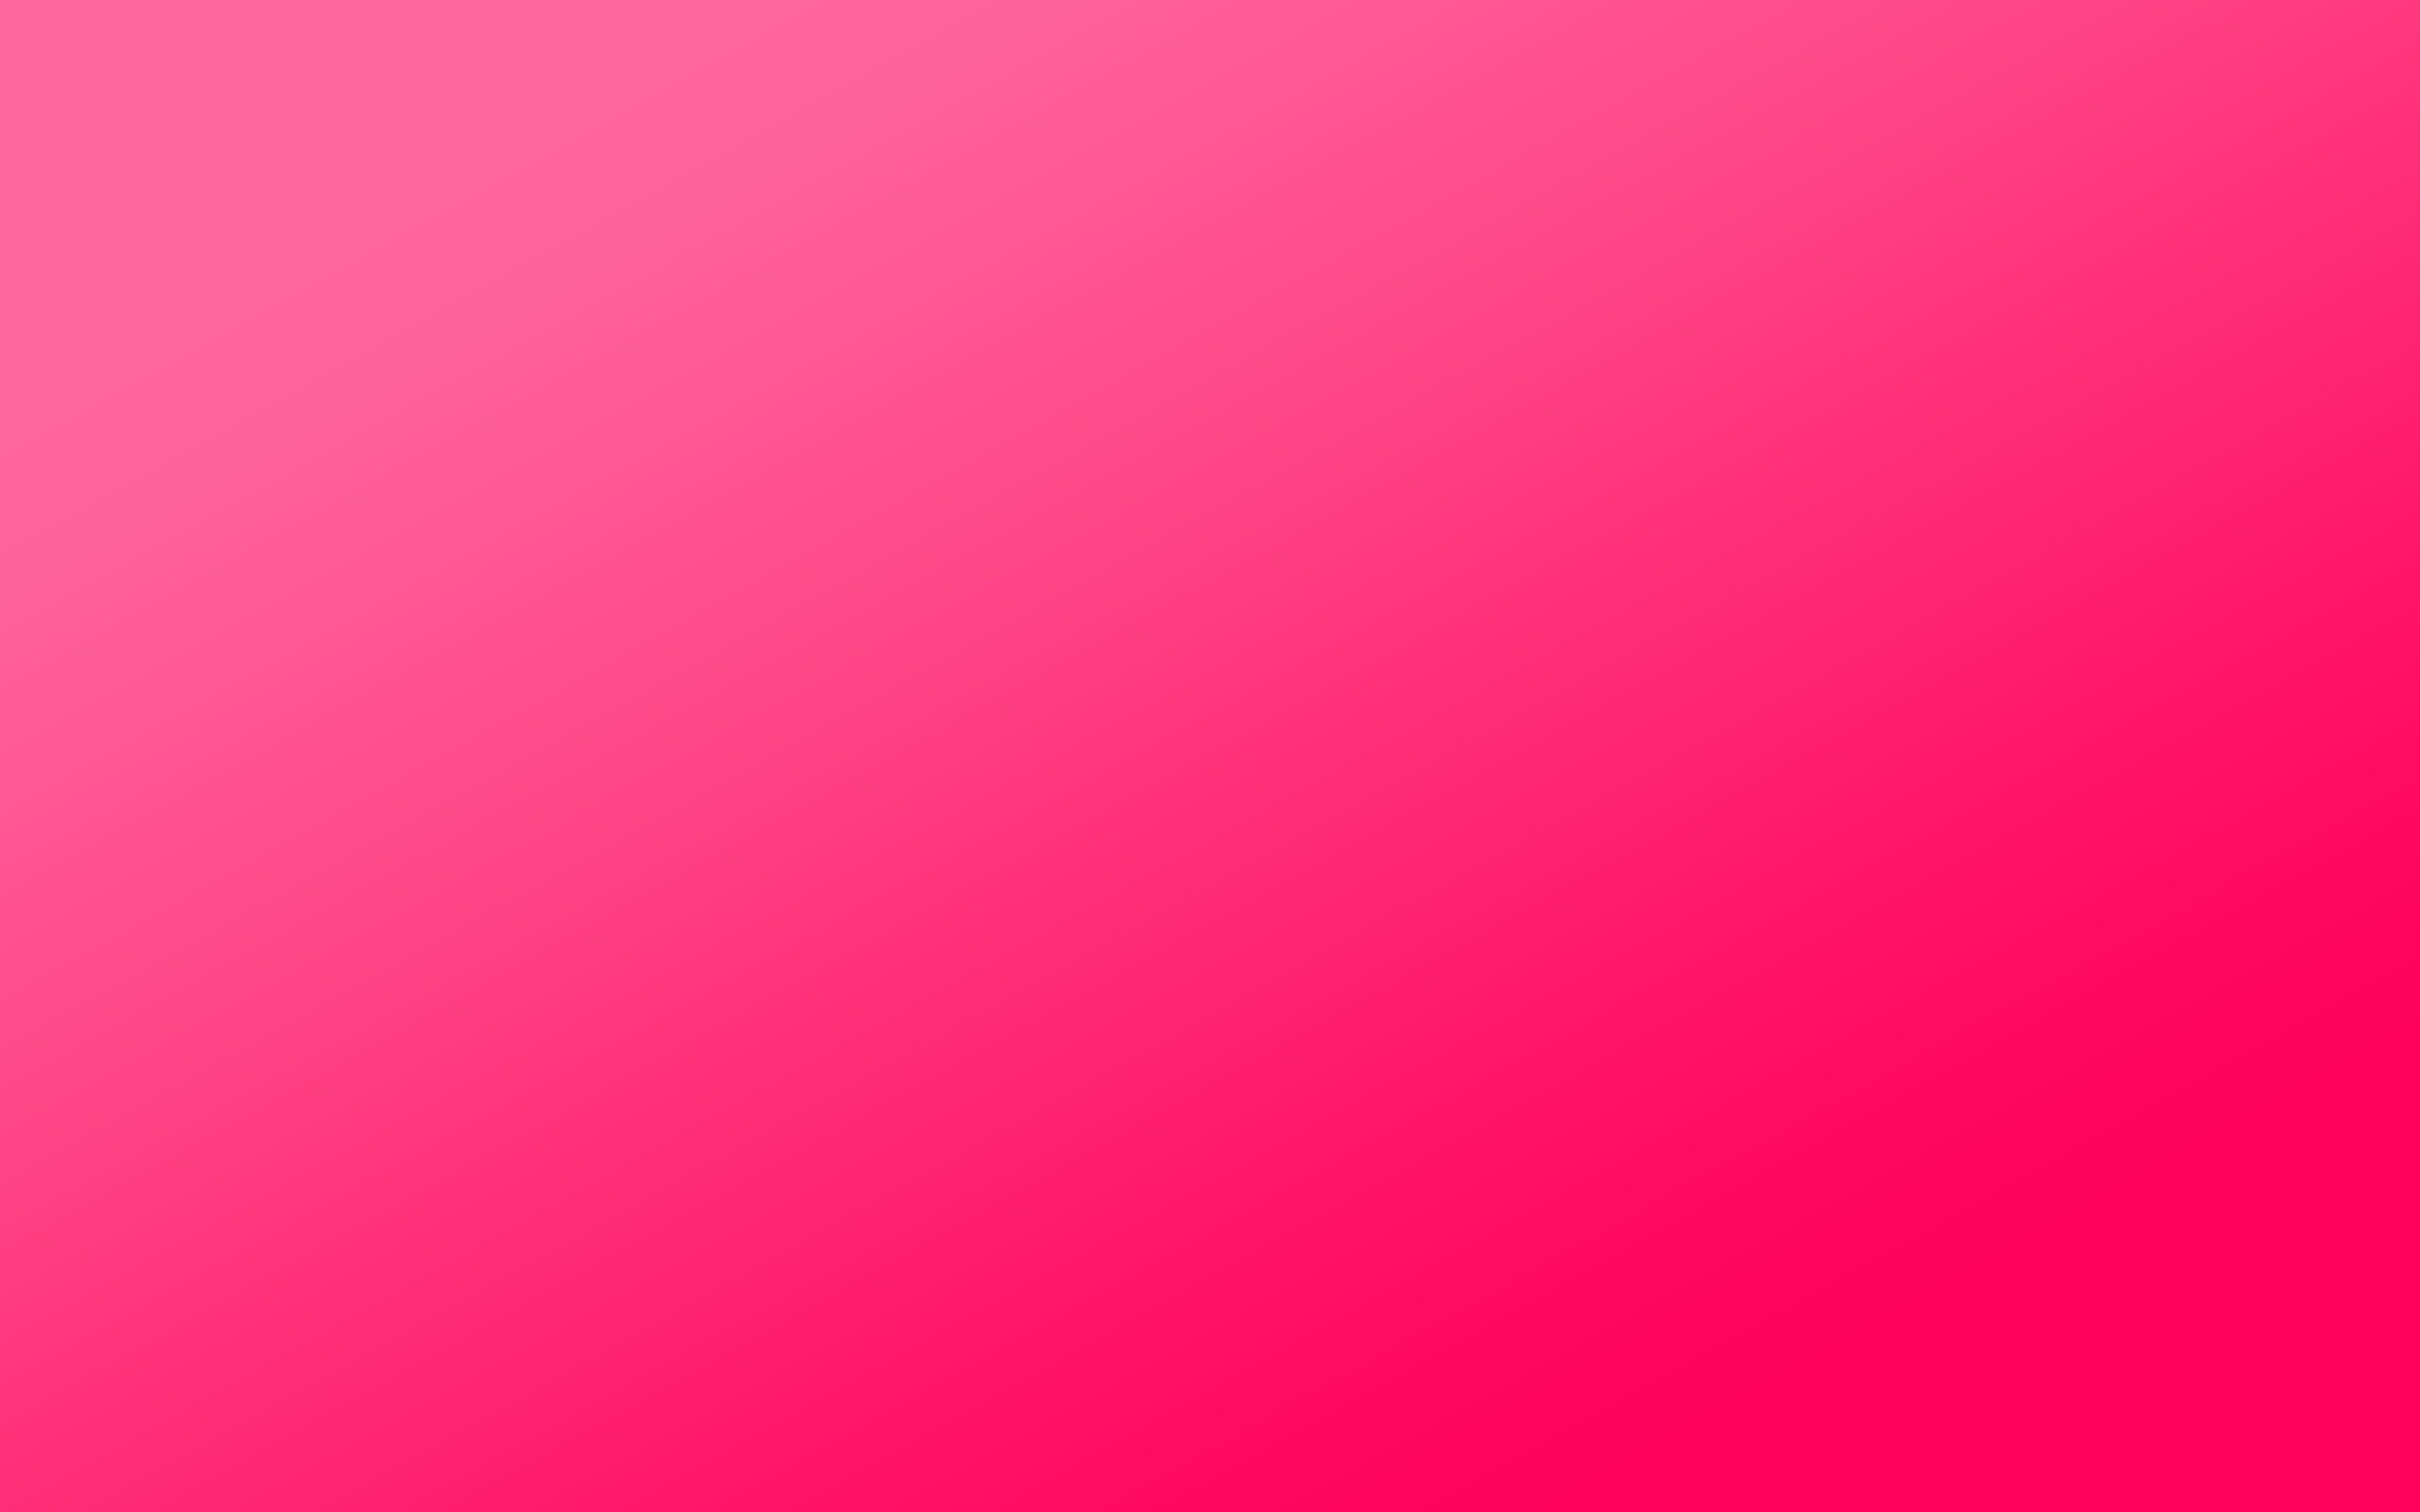 2560x1600  Pink Backgrounds - Wallpaper Cave